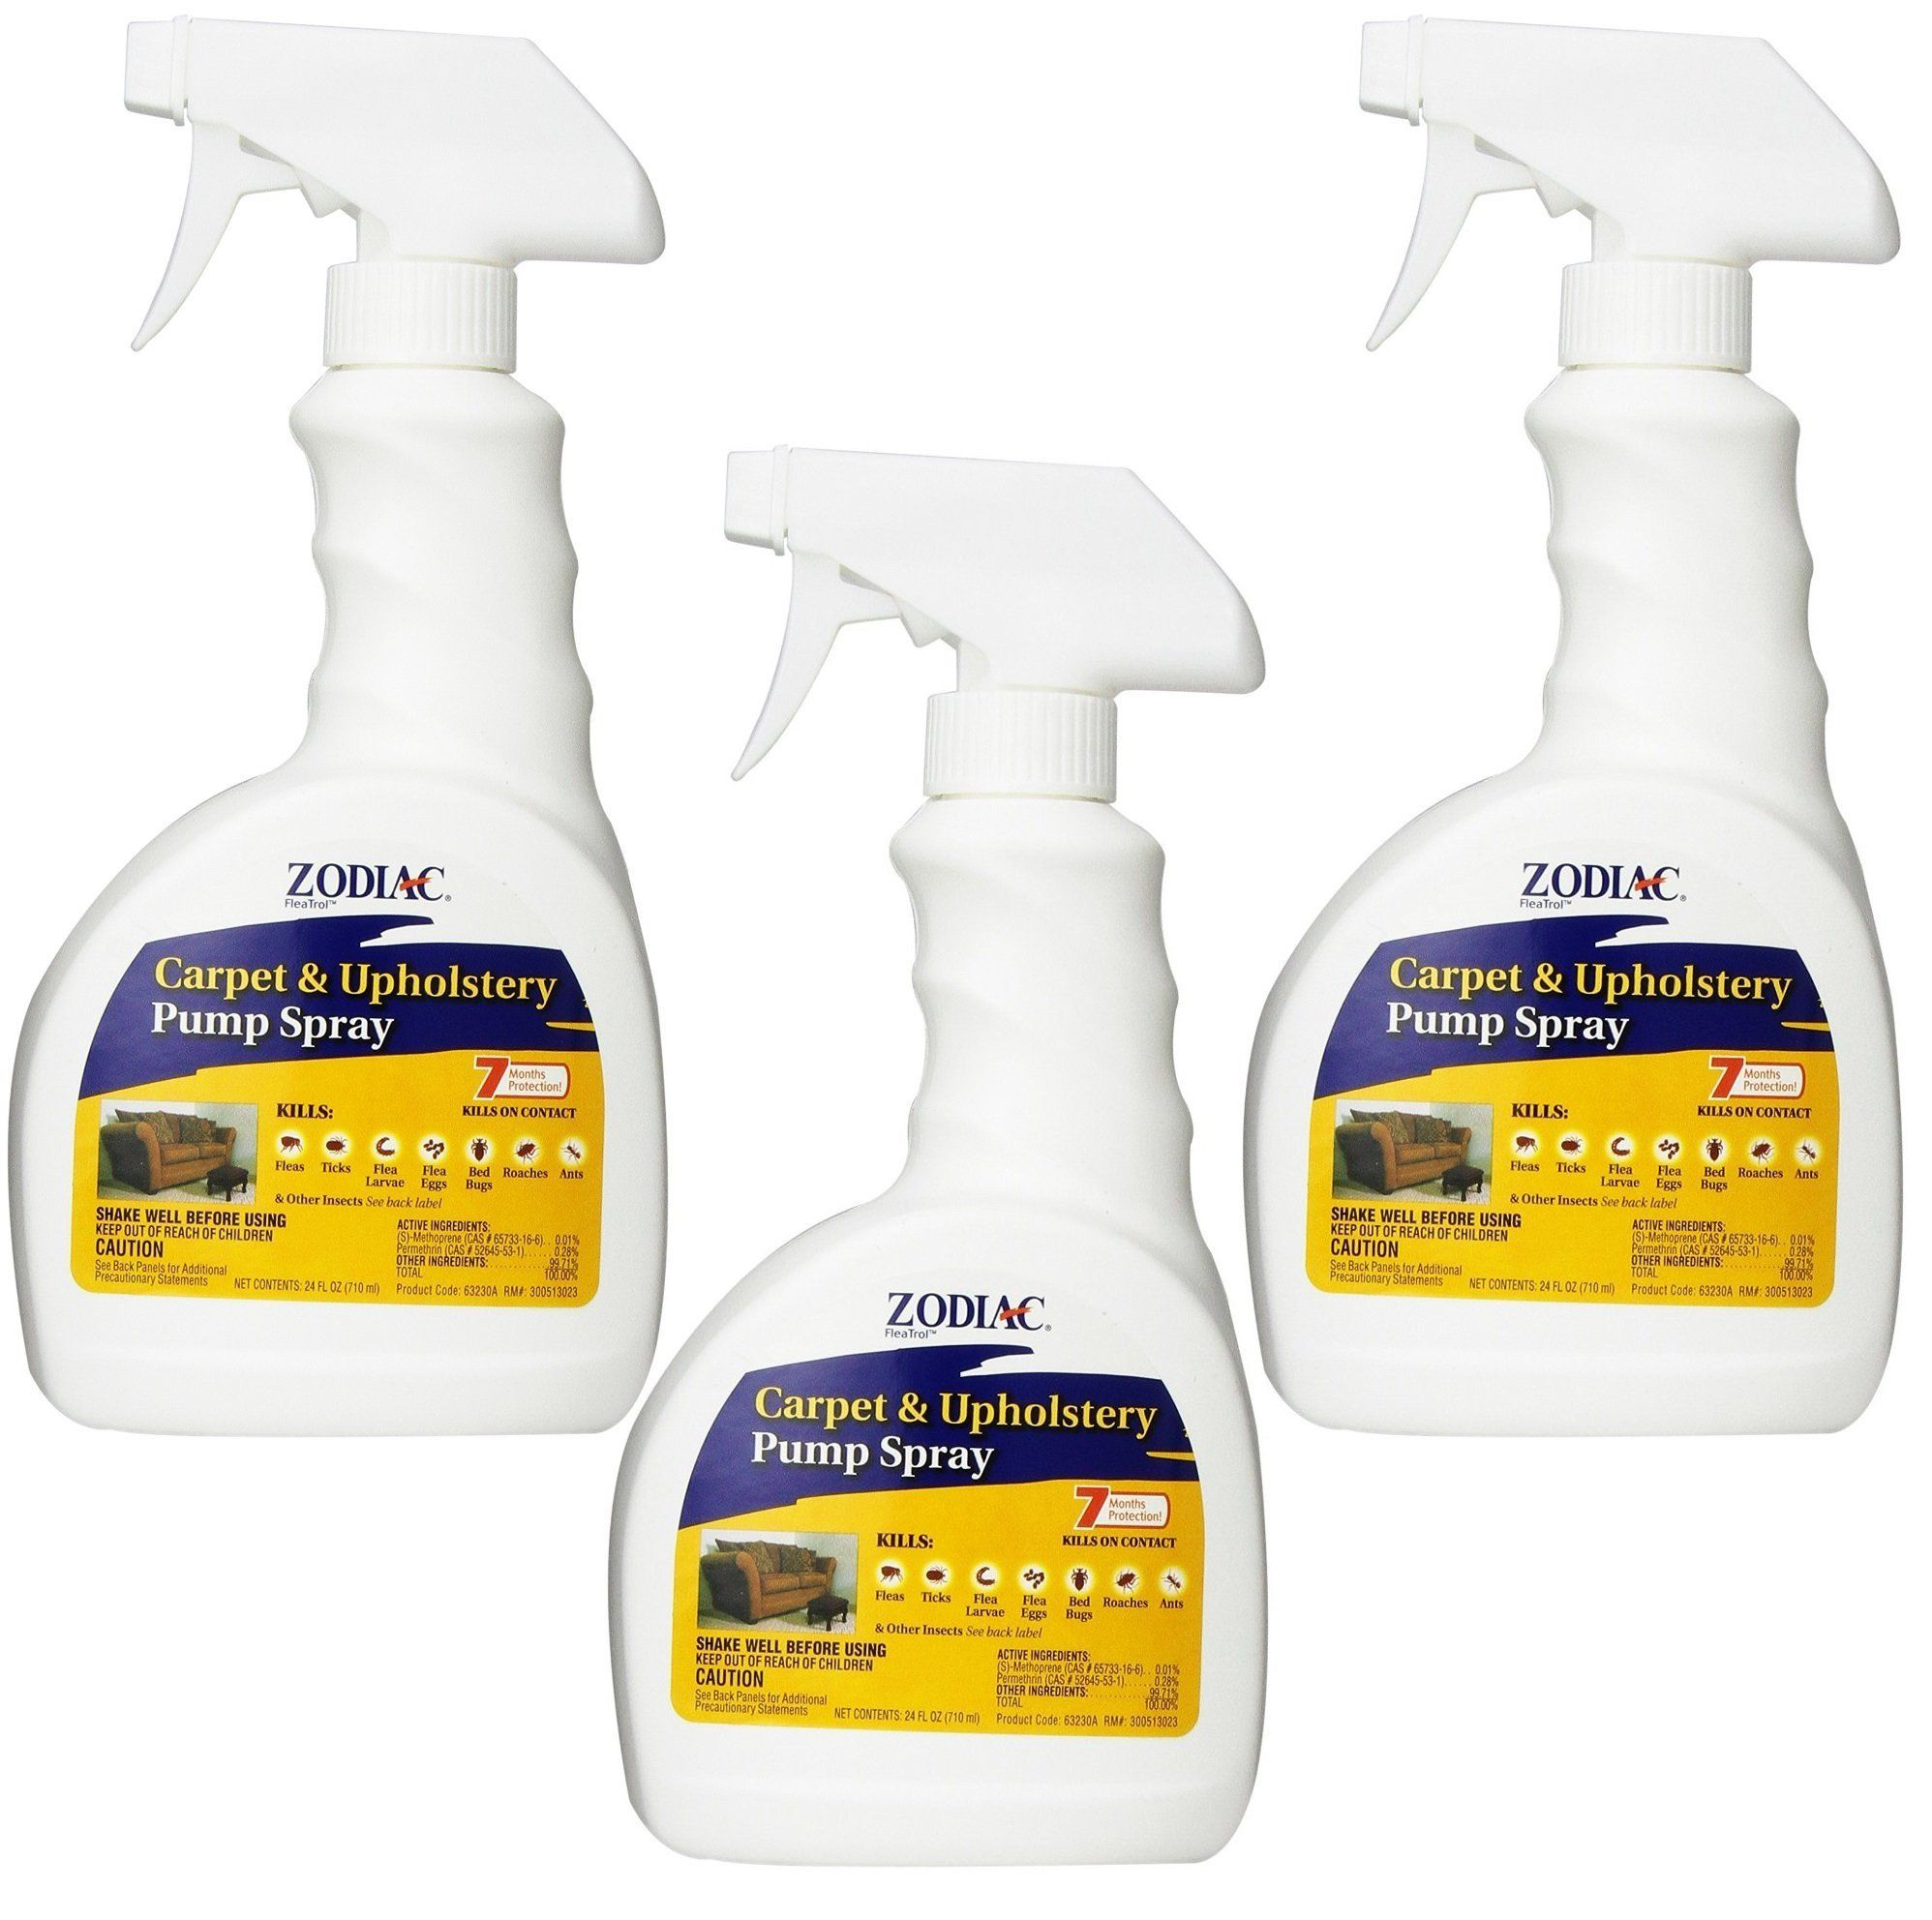 (3 Pack) Zodiac Flea Control Carpet and Upholstery Pump